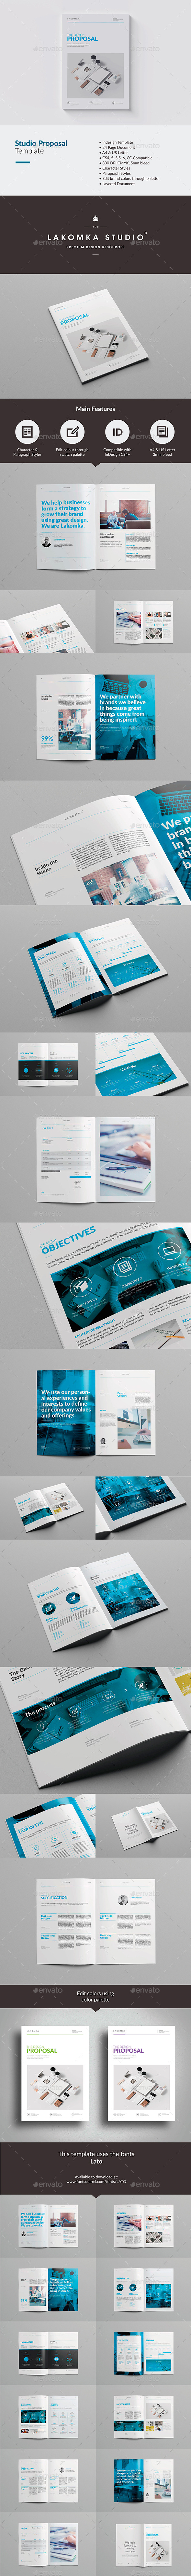 GraphicRiver Studio Proposal Template 2.0 10100891